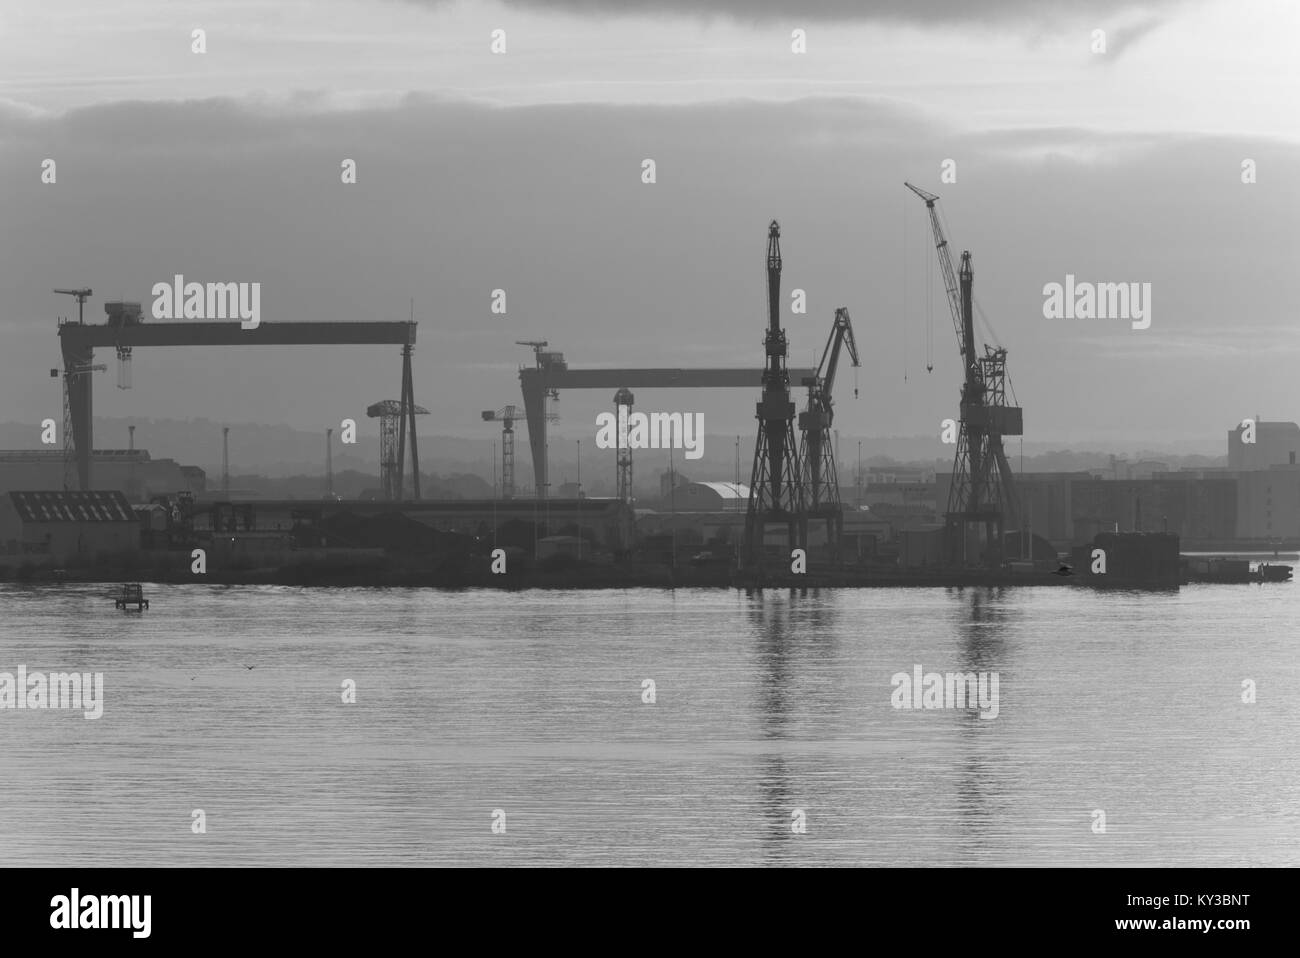 belfast heabour at sunset - Stock Image